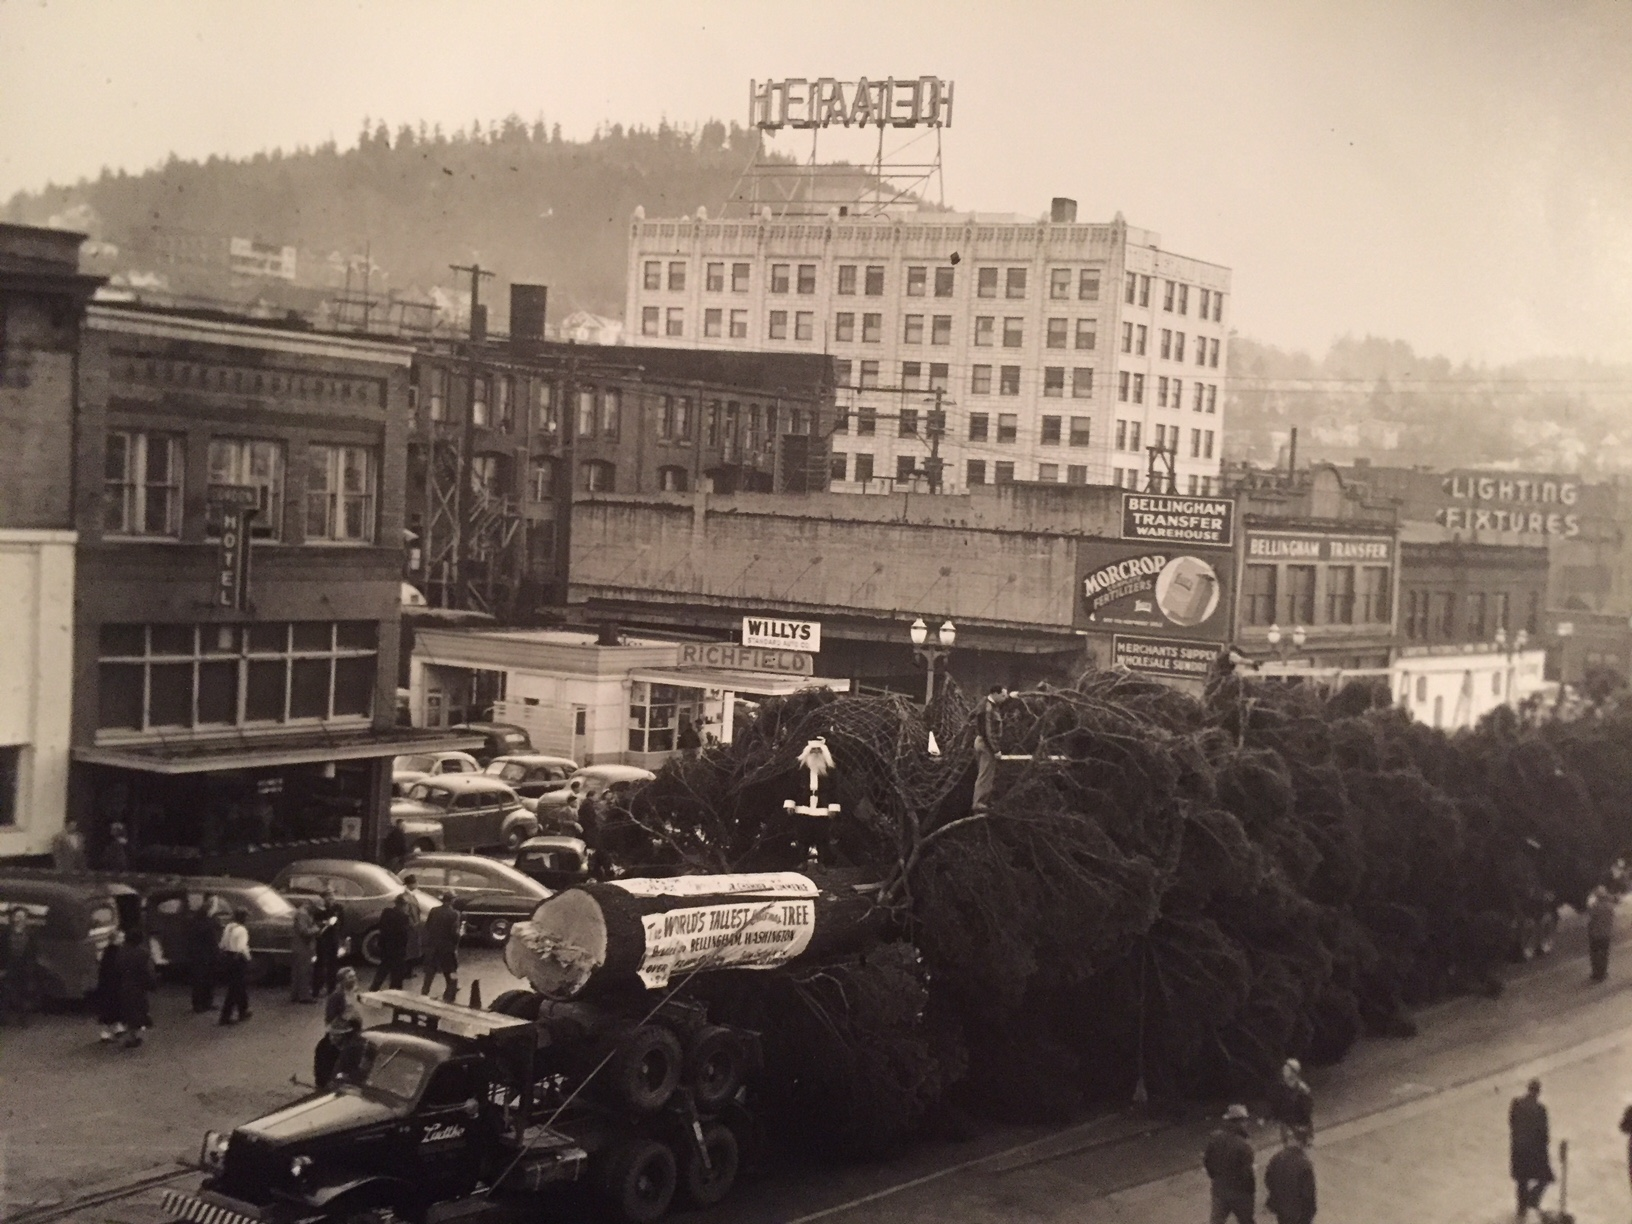 1949 Railroad avenue - world's largest christmas tree.  hamlet hotel is the two tone building on the far right